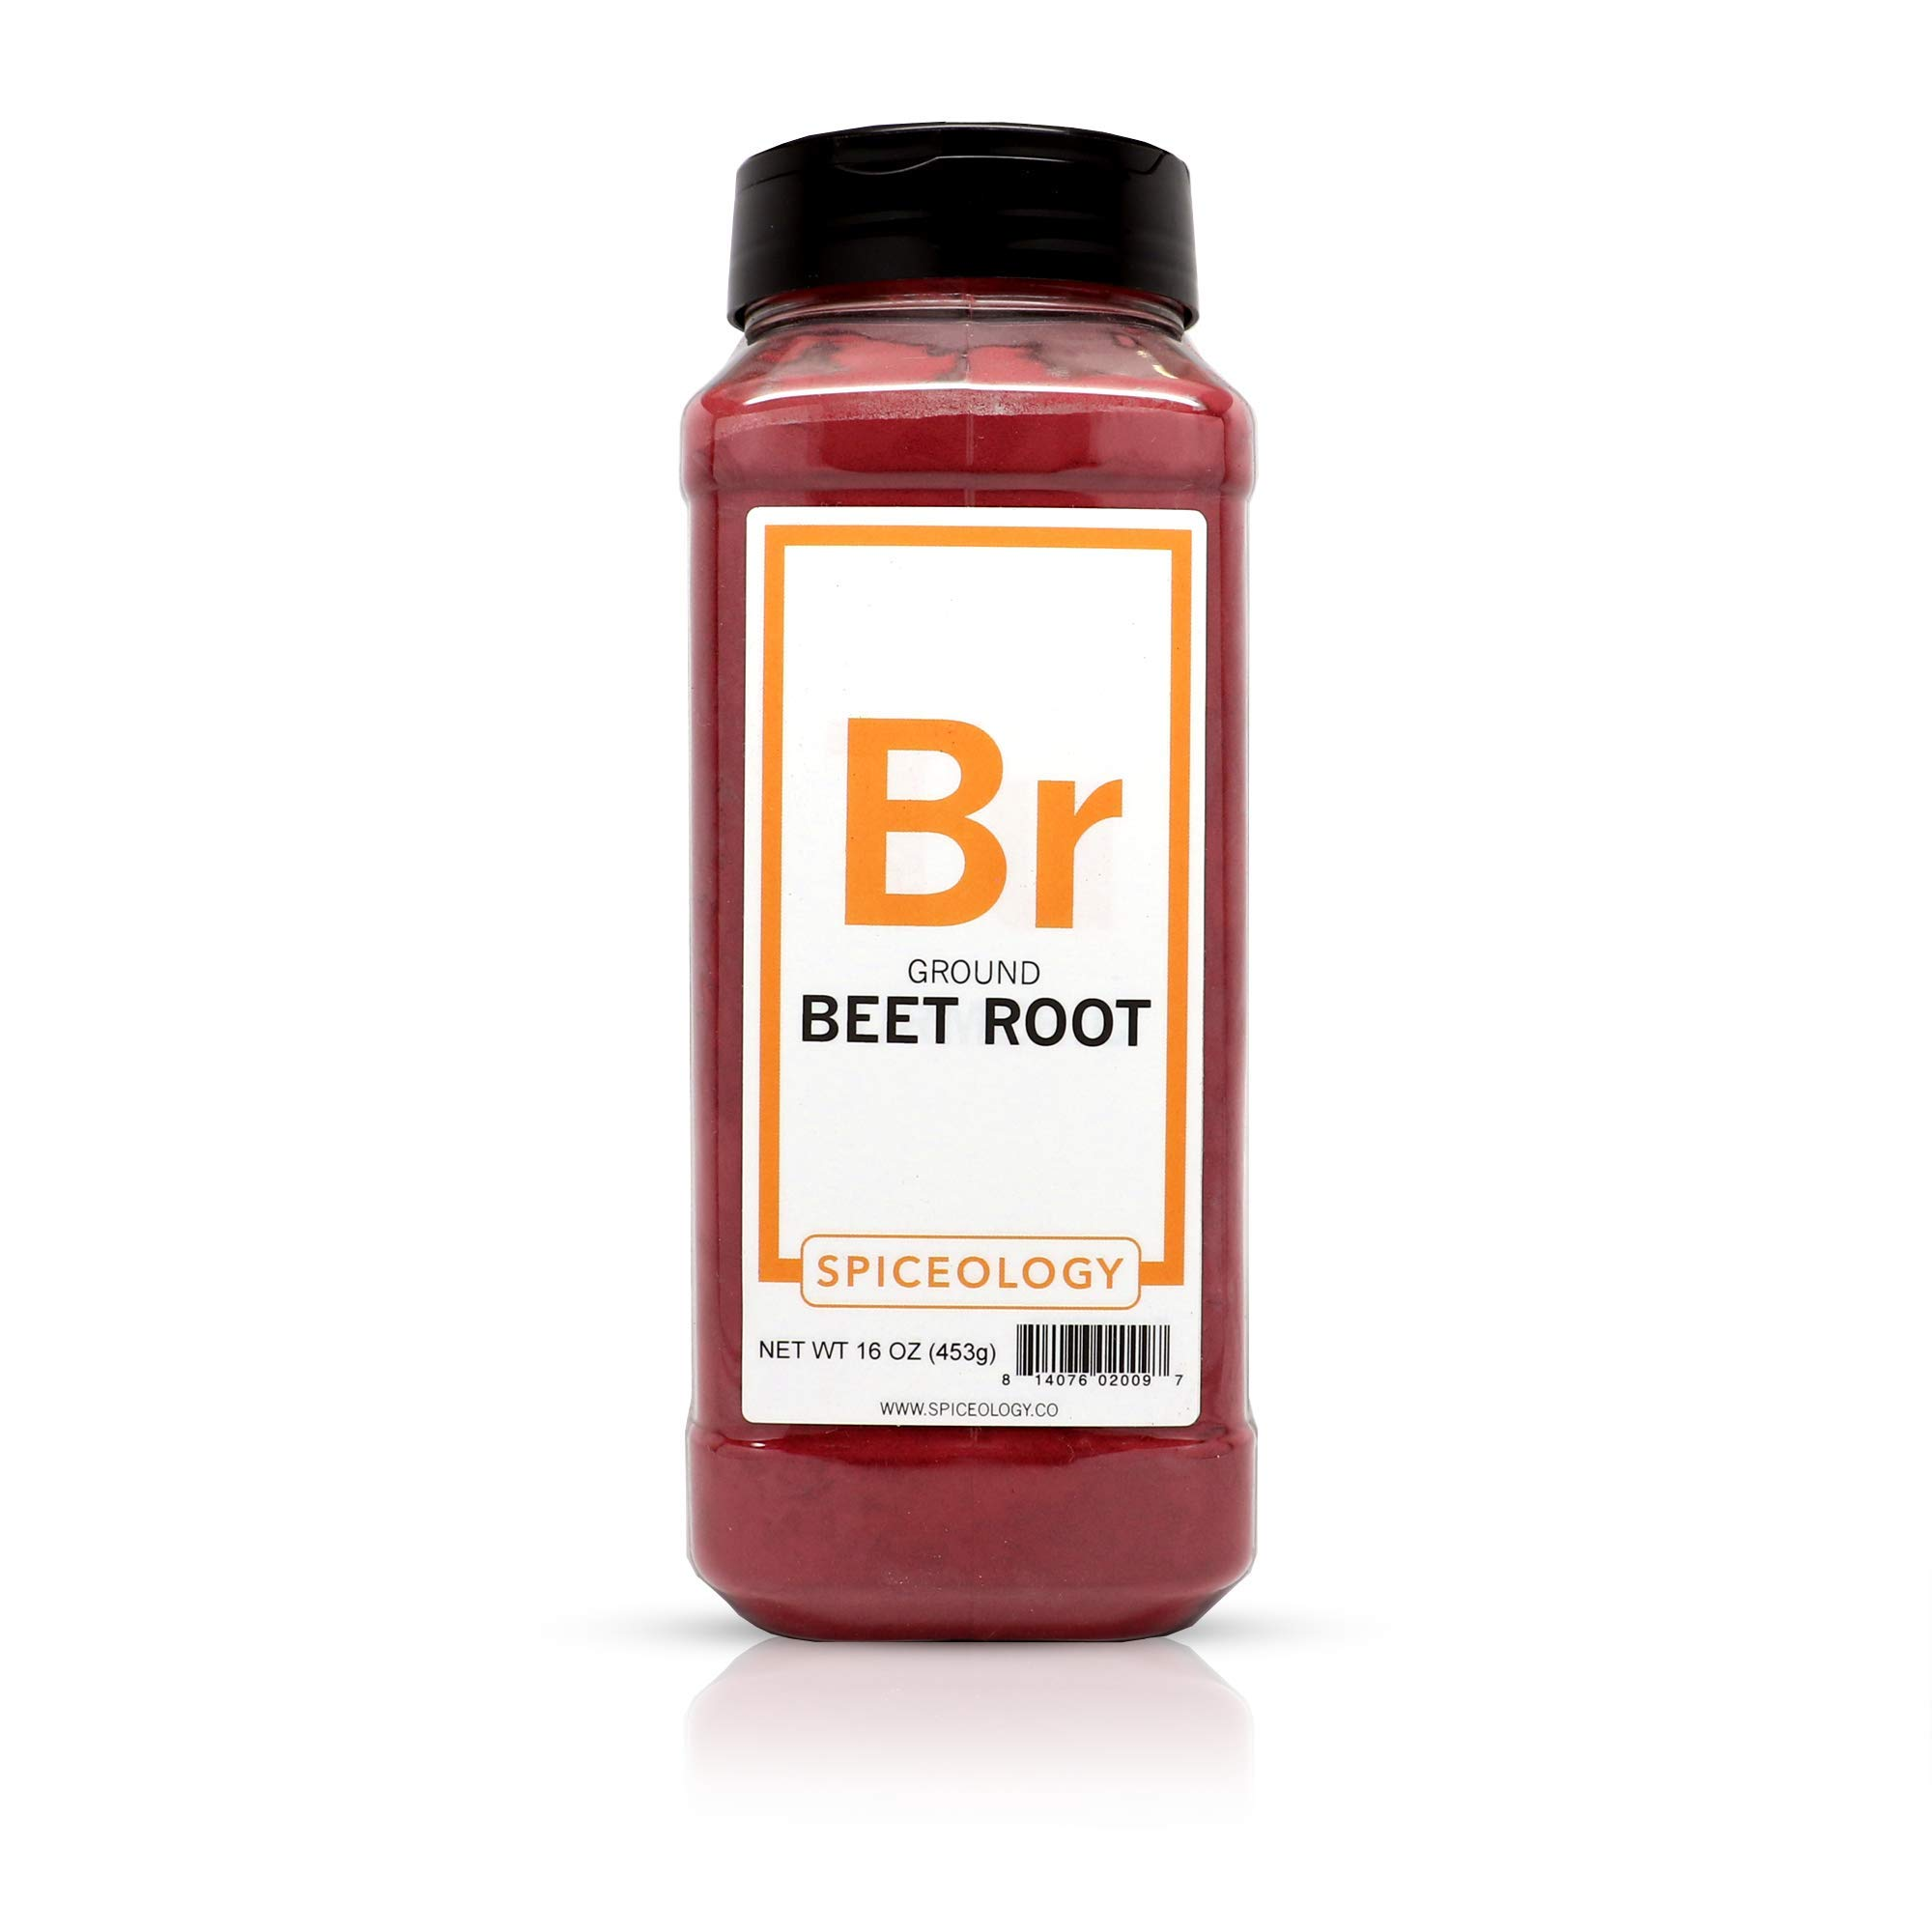 Beet Root Powder - Spiceology Ground Beetroot - 16 ounces